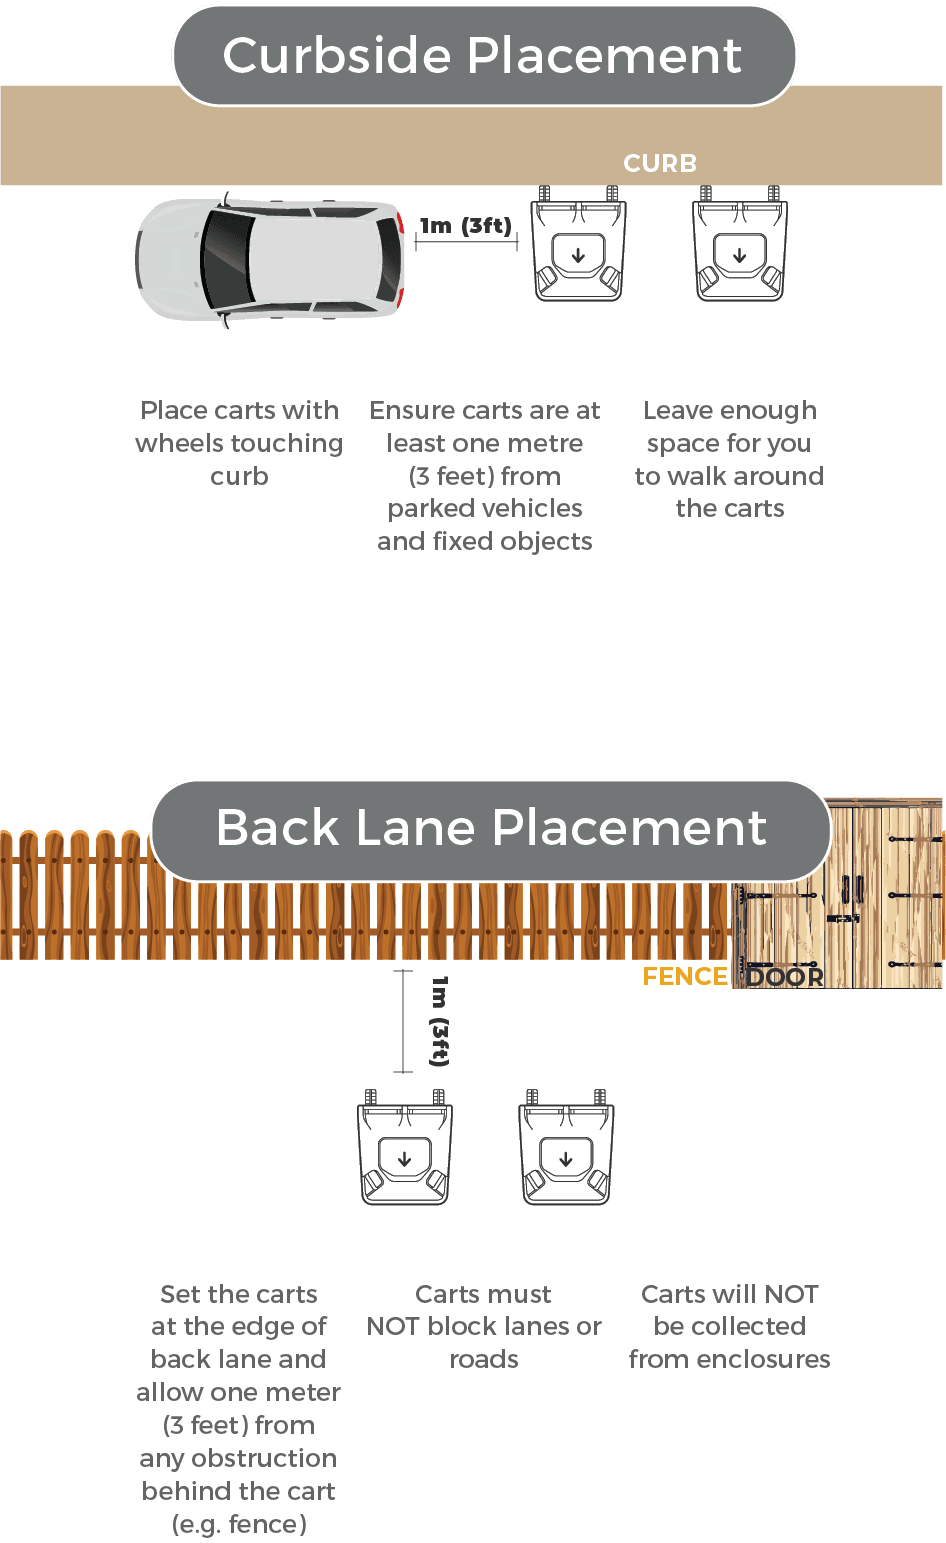 Cart placement requirements